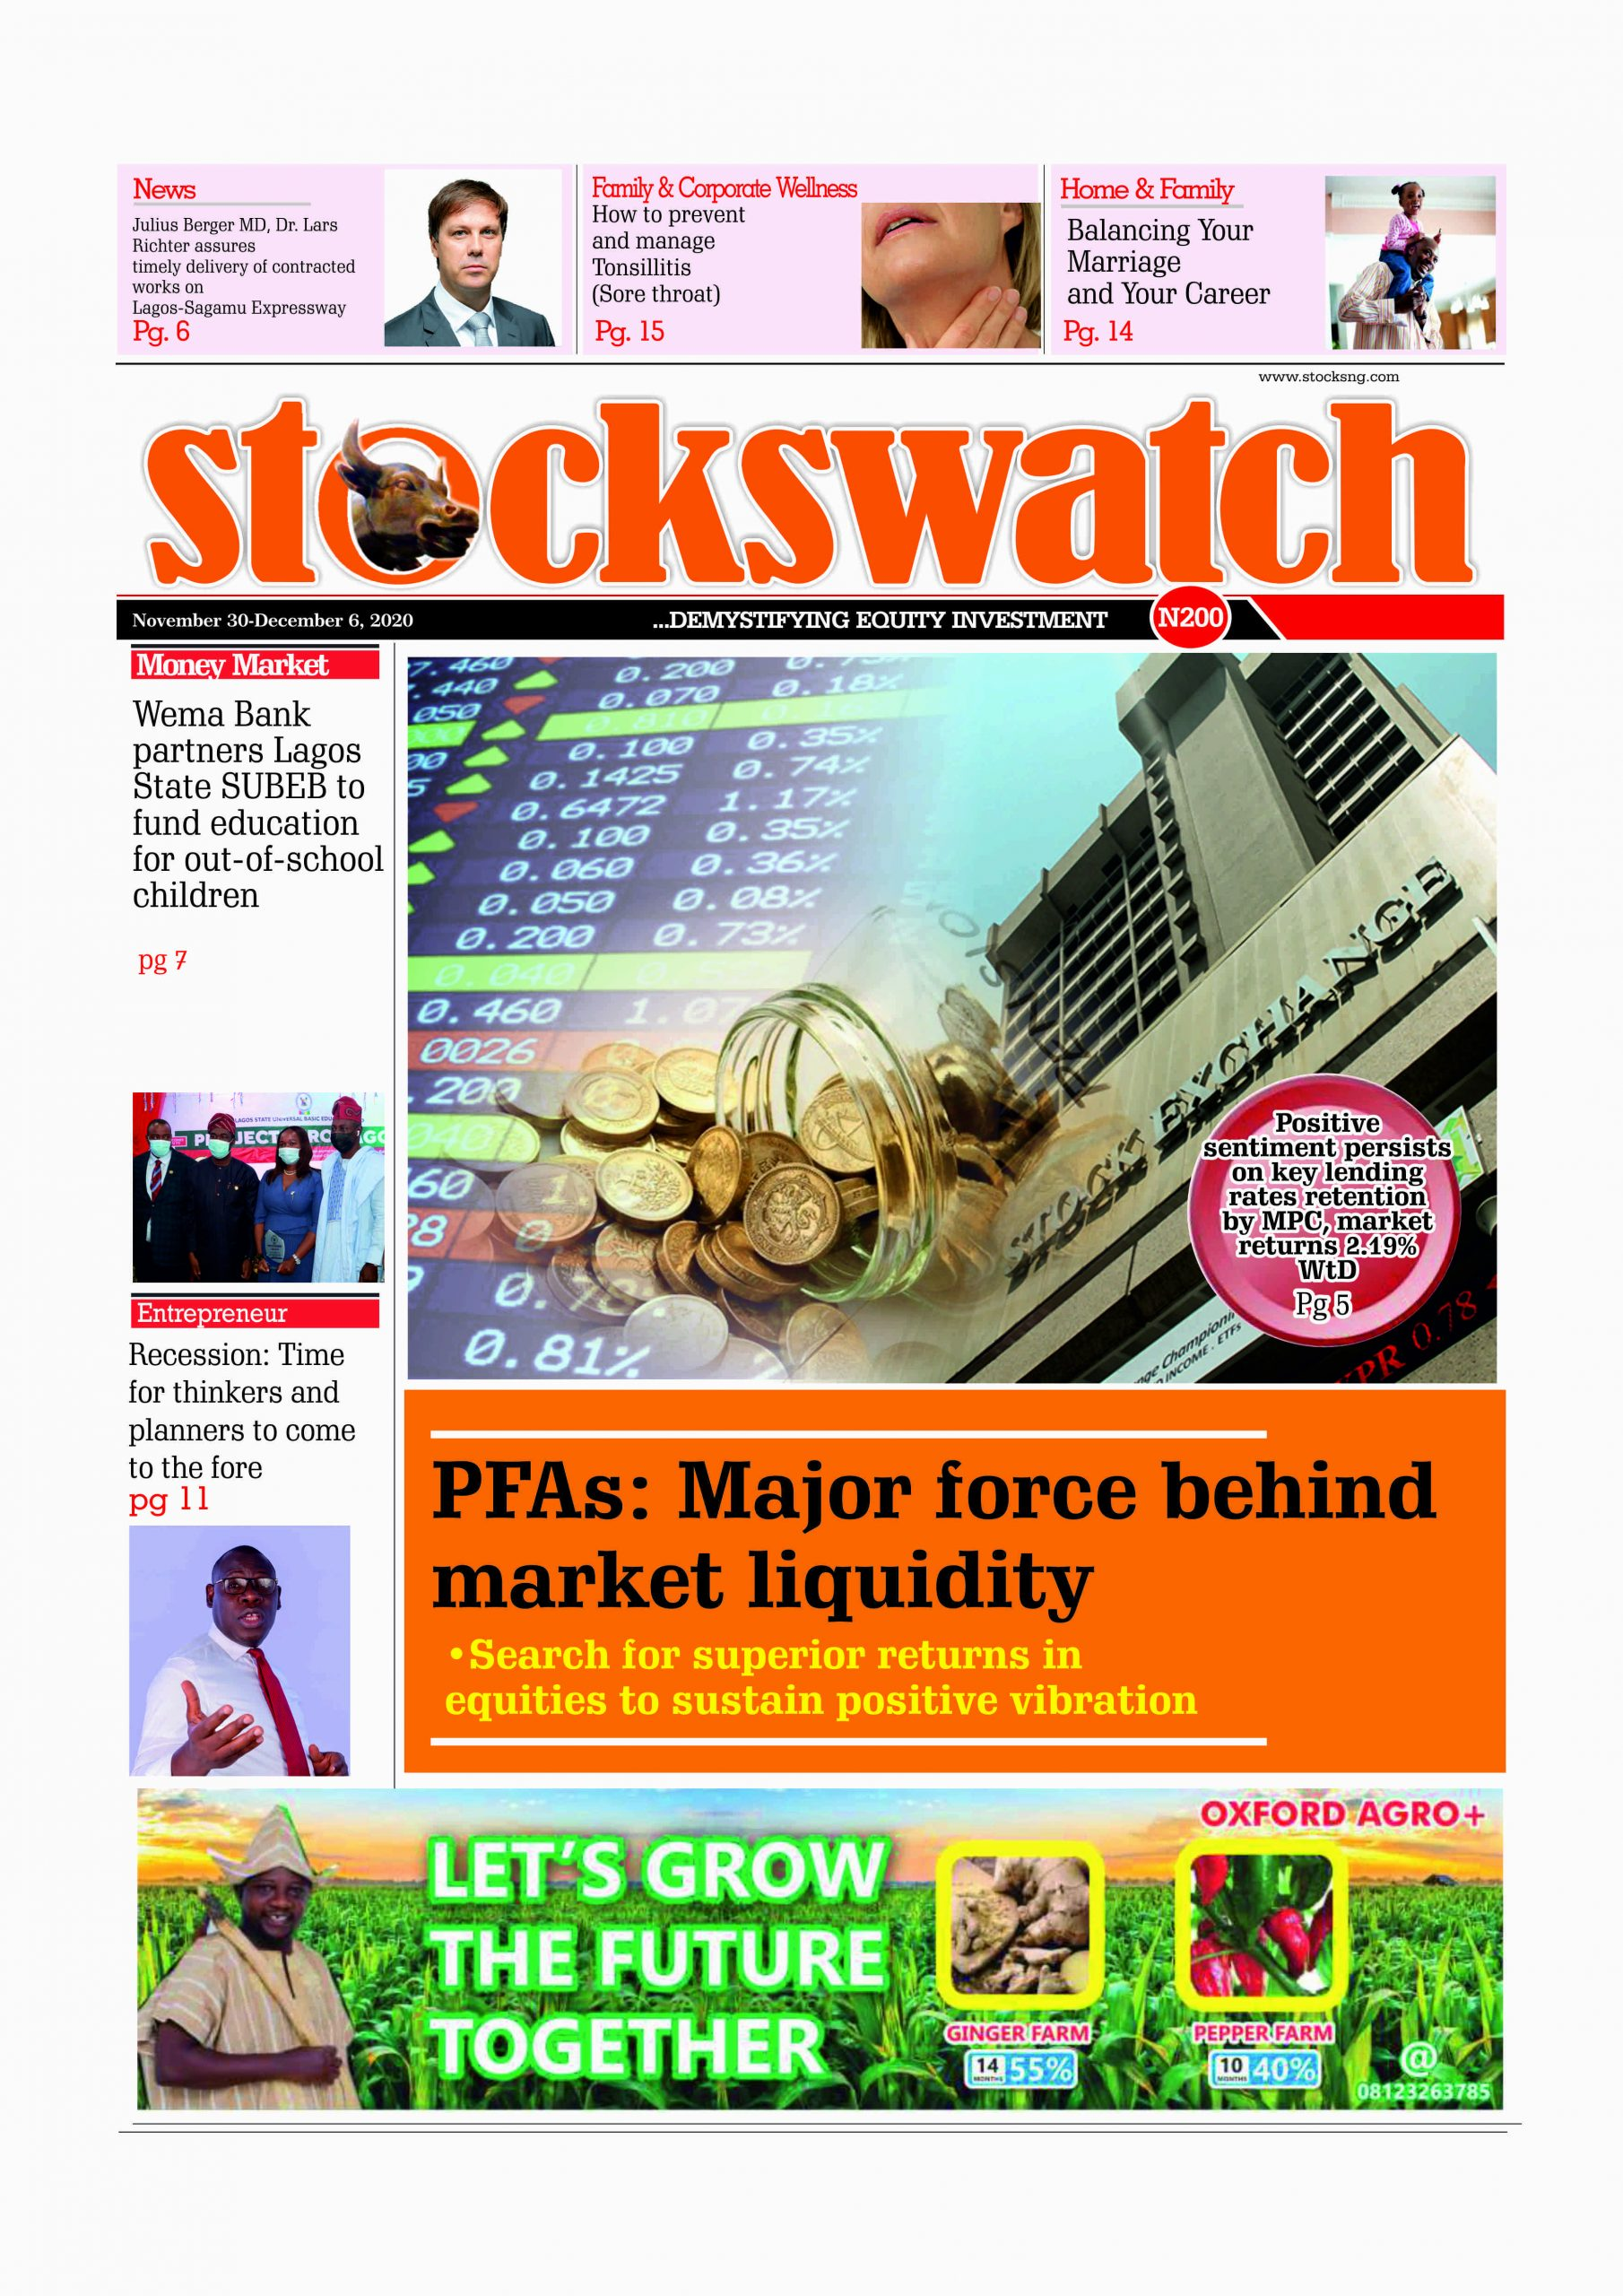 Stockswatch, November 30-December 6, 2020